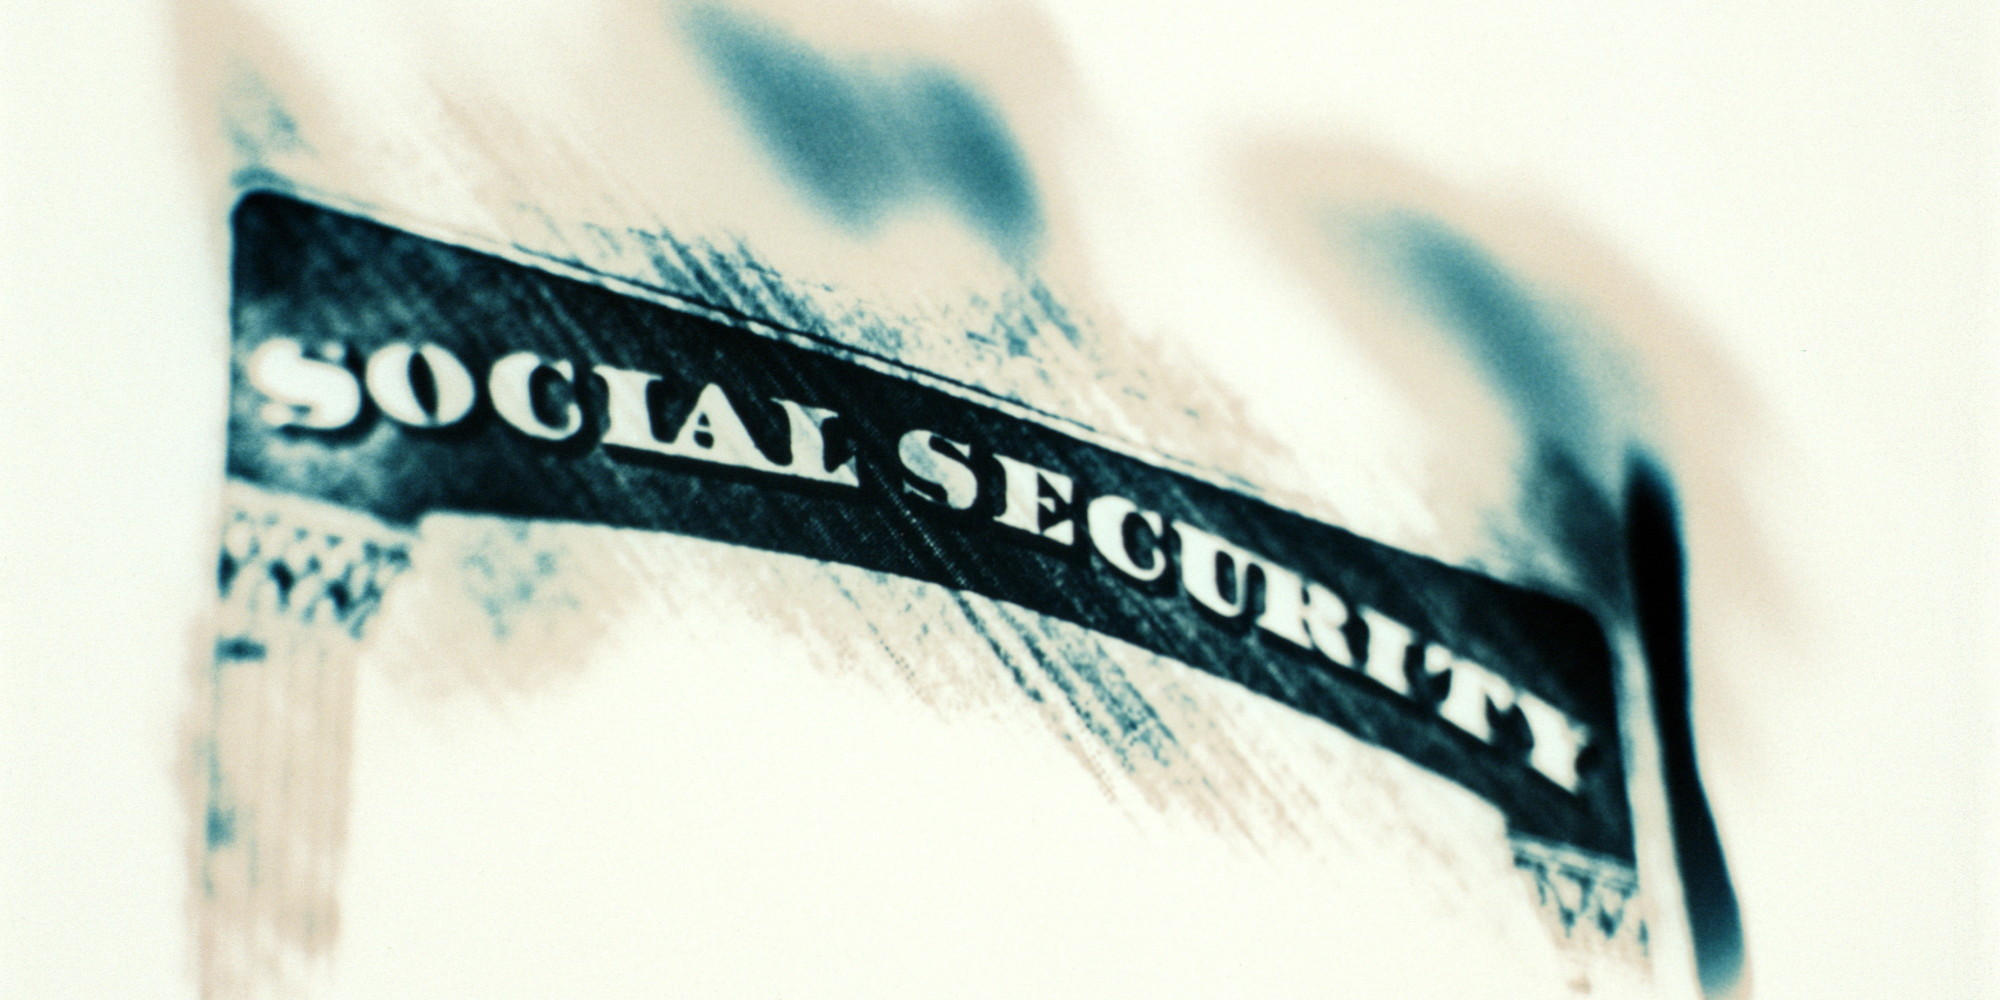 the future of social security com If i am fortunate enough to be my party's nominee, i will advocate for solutions that keep social security strong for seniors now and in the future.